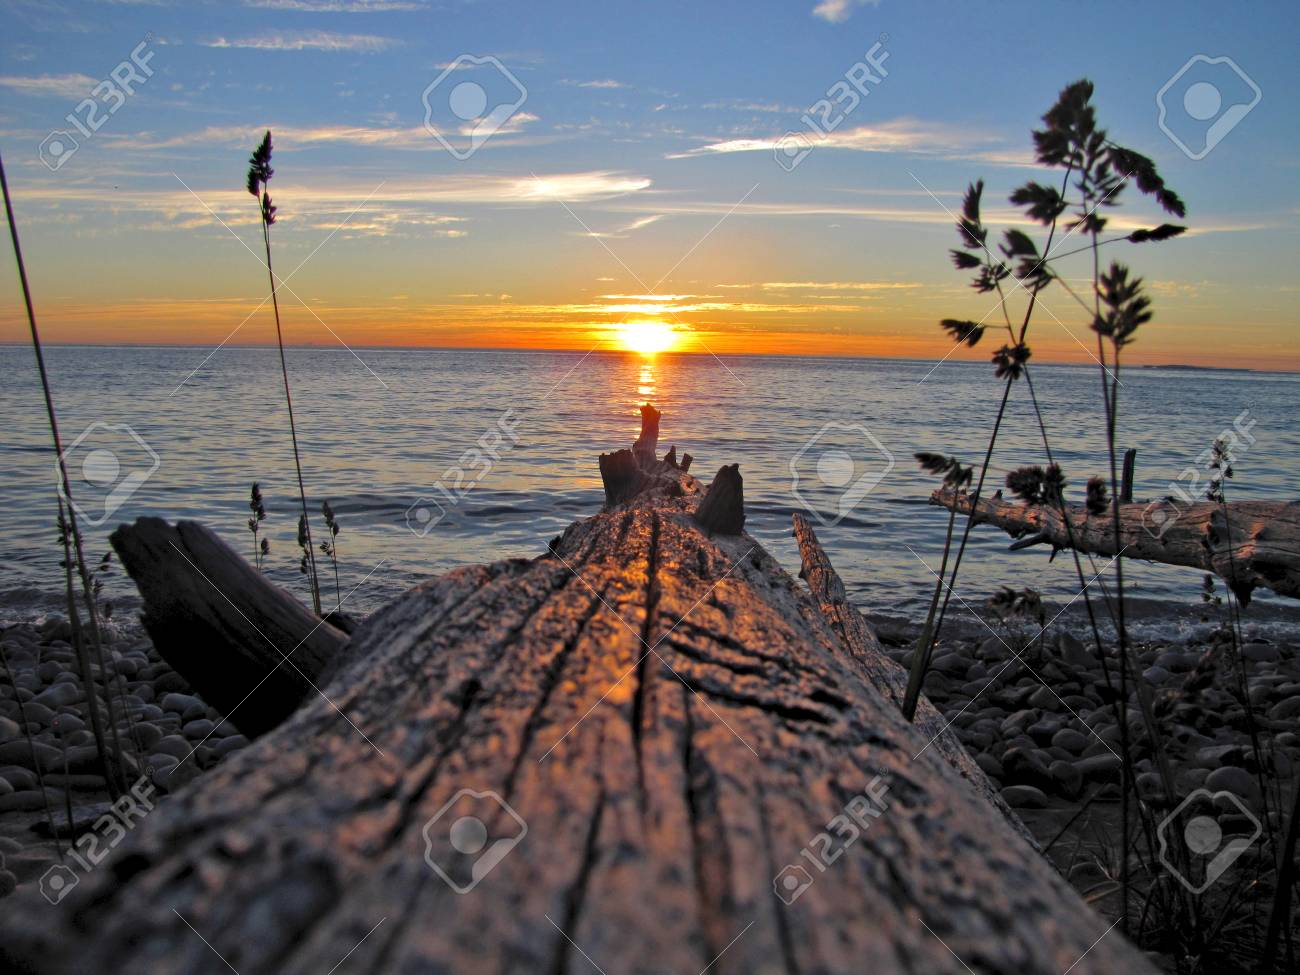 A sunset on Lake Michigan as seen from a fallen tree - 34435176